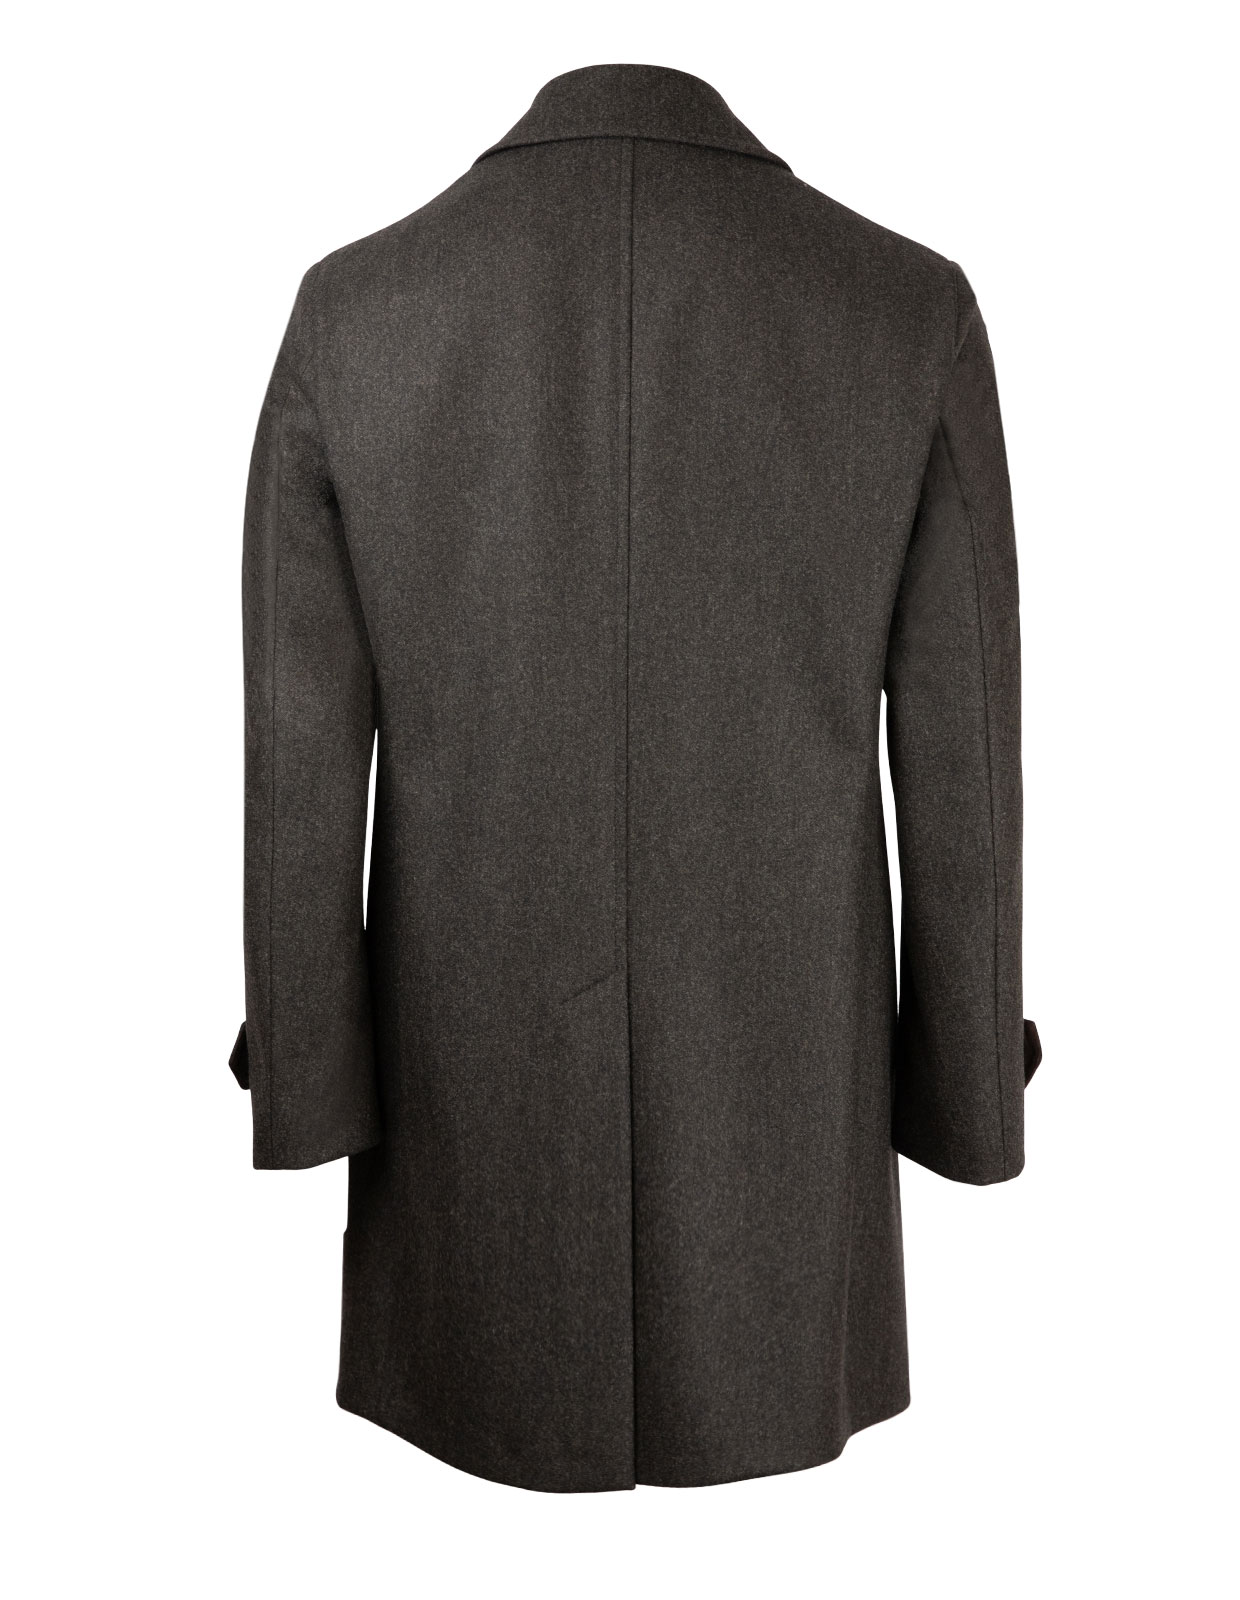 Coat 7387 Vitale Barberis Canonico Vintage DarkGreenMel